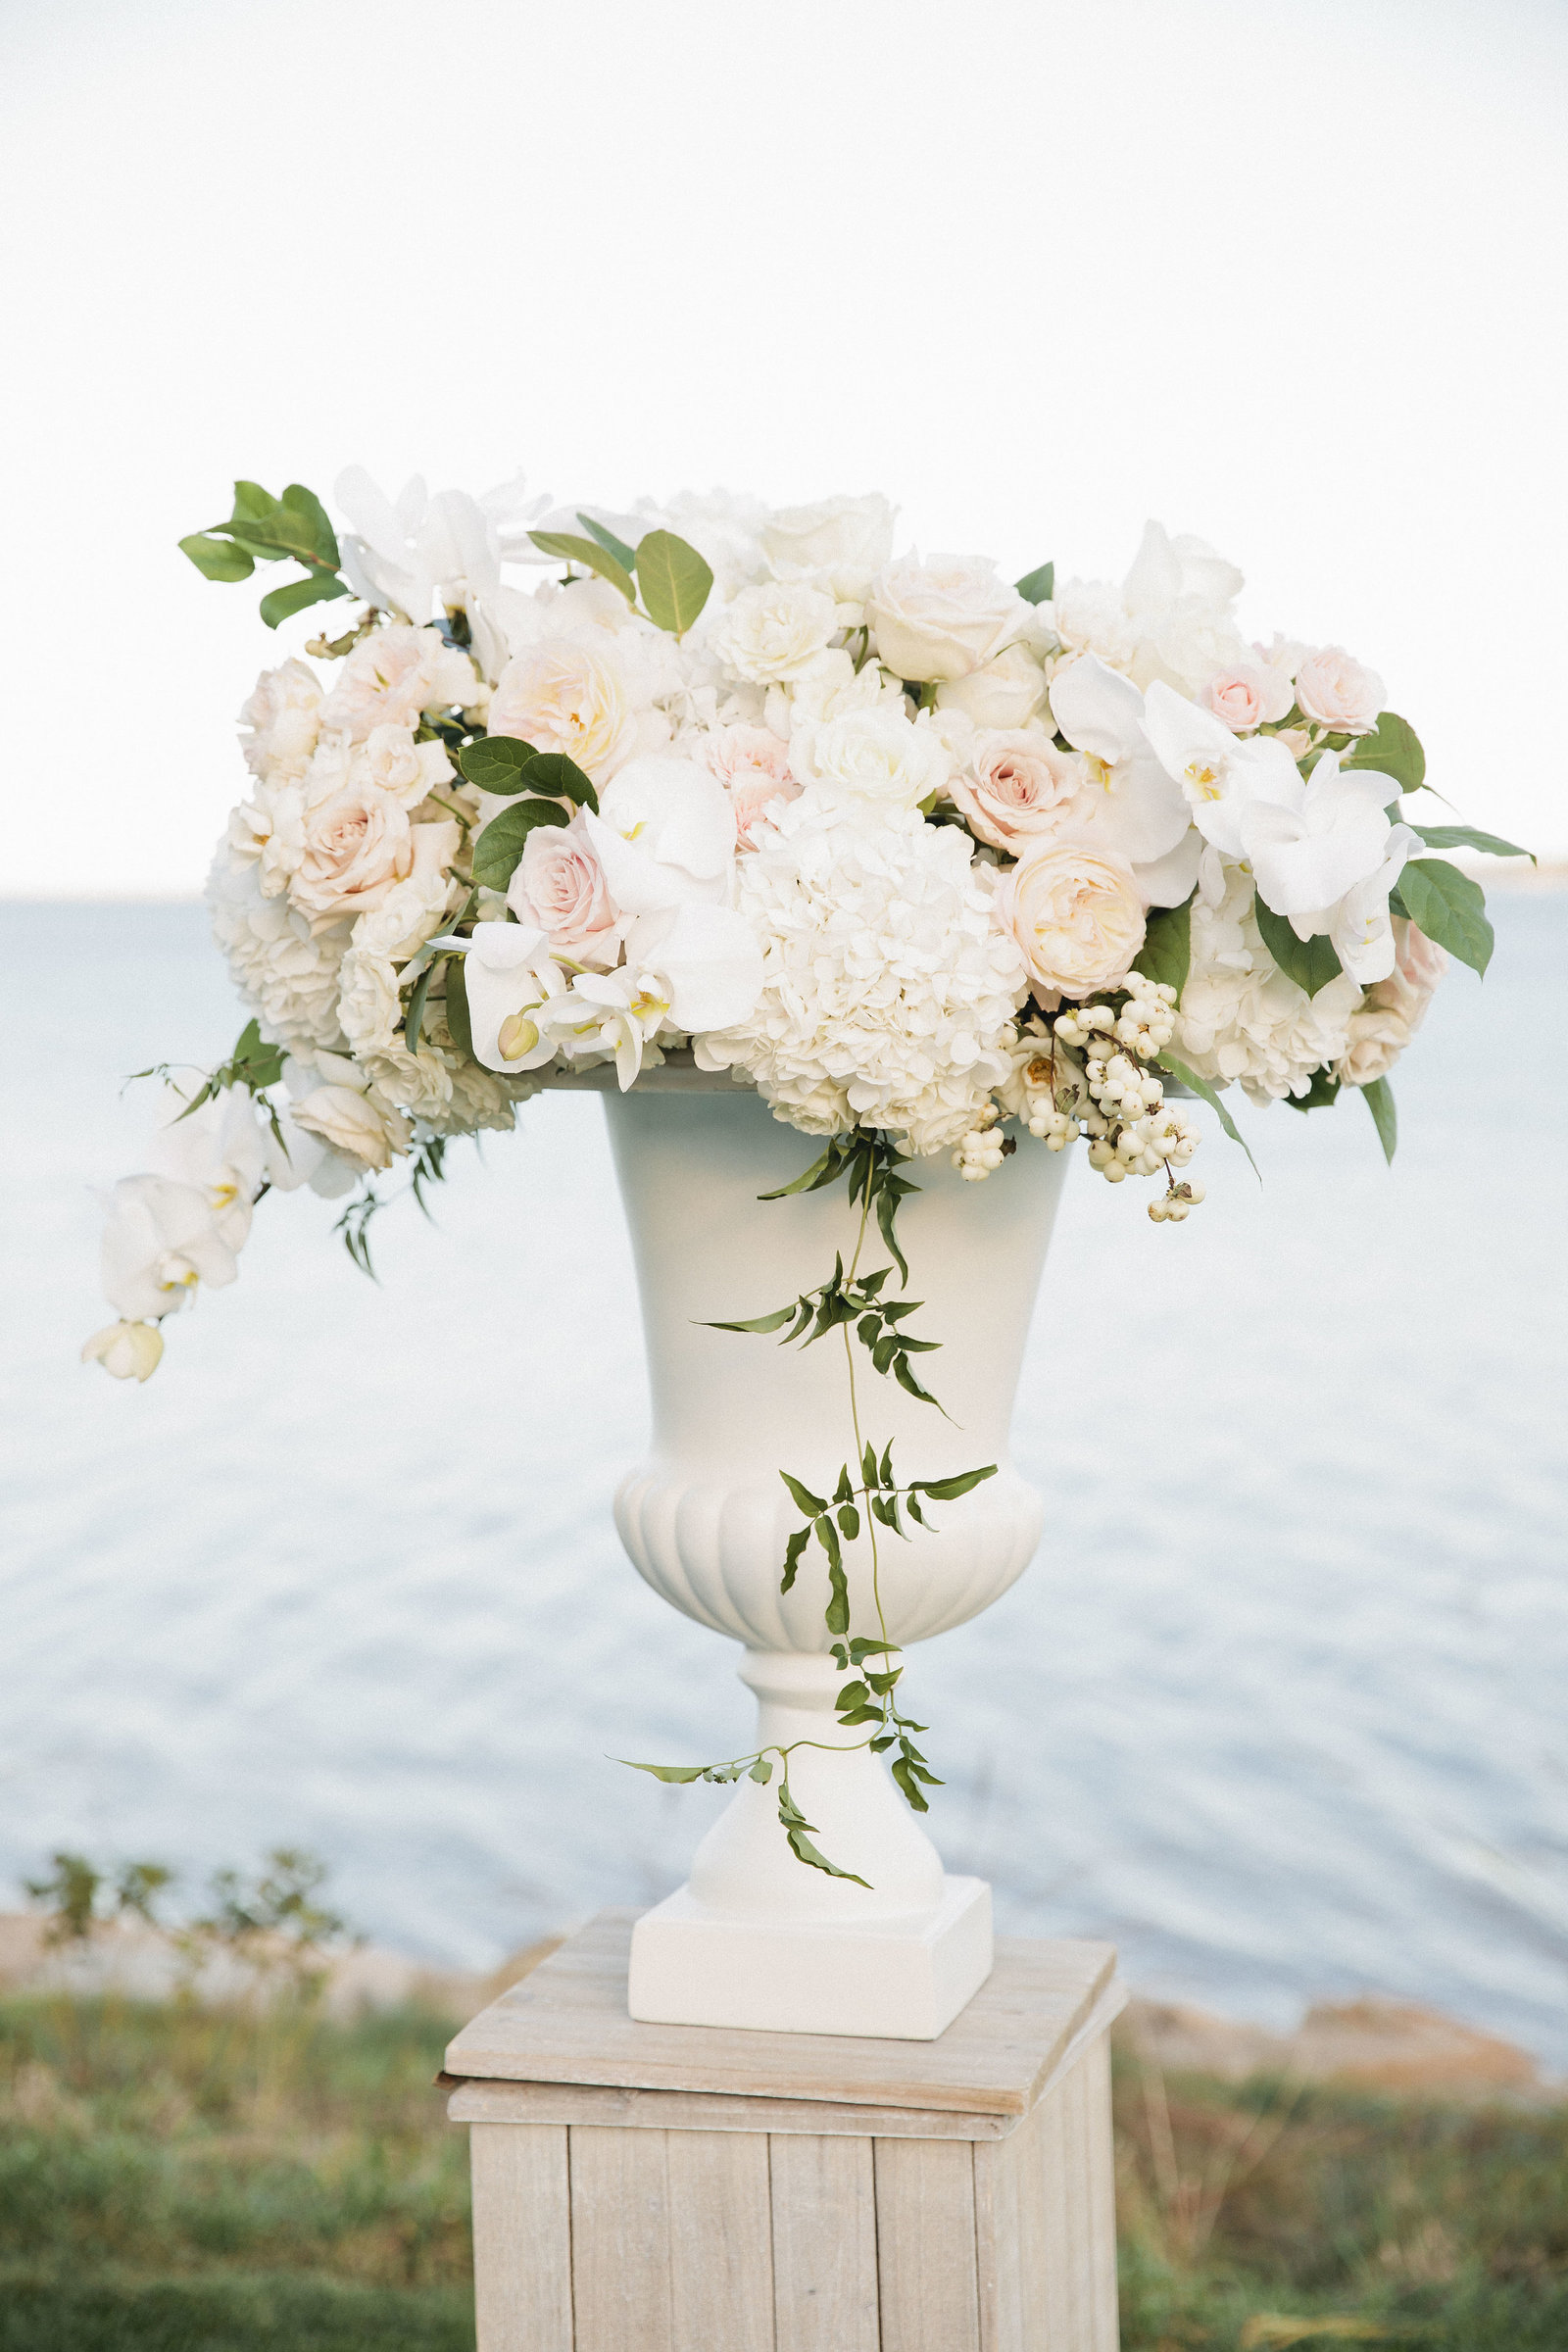 Ceremony floral urns on pedestals for coastal wedding at Wequassett Resort